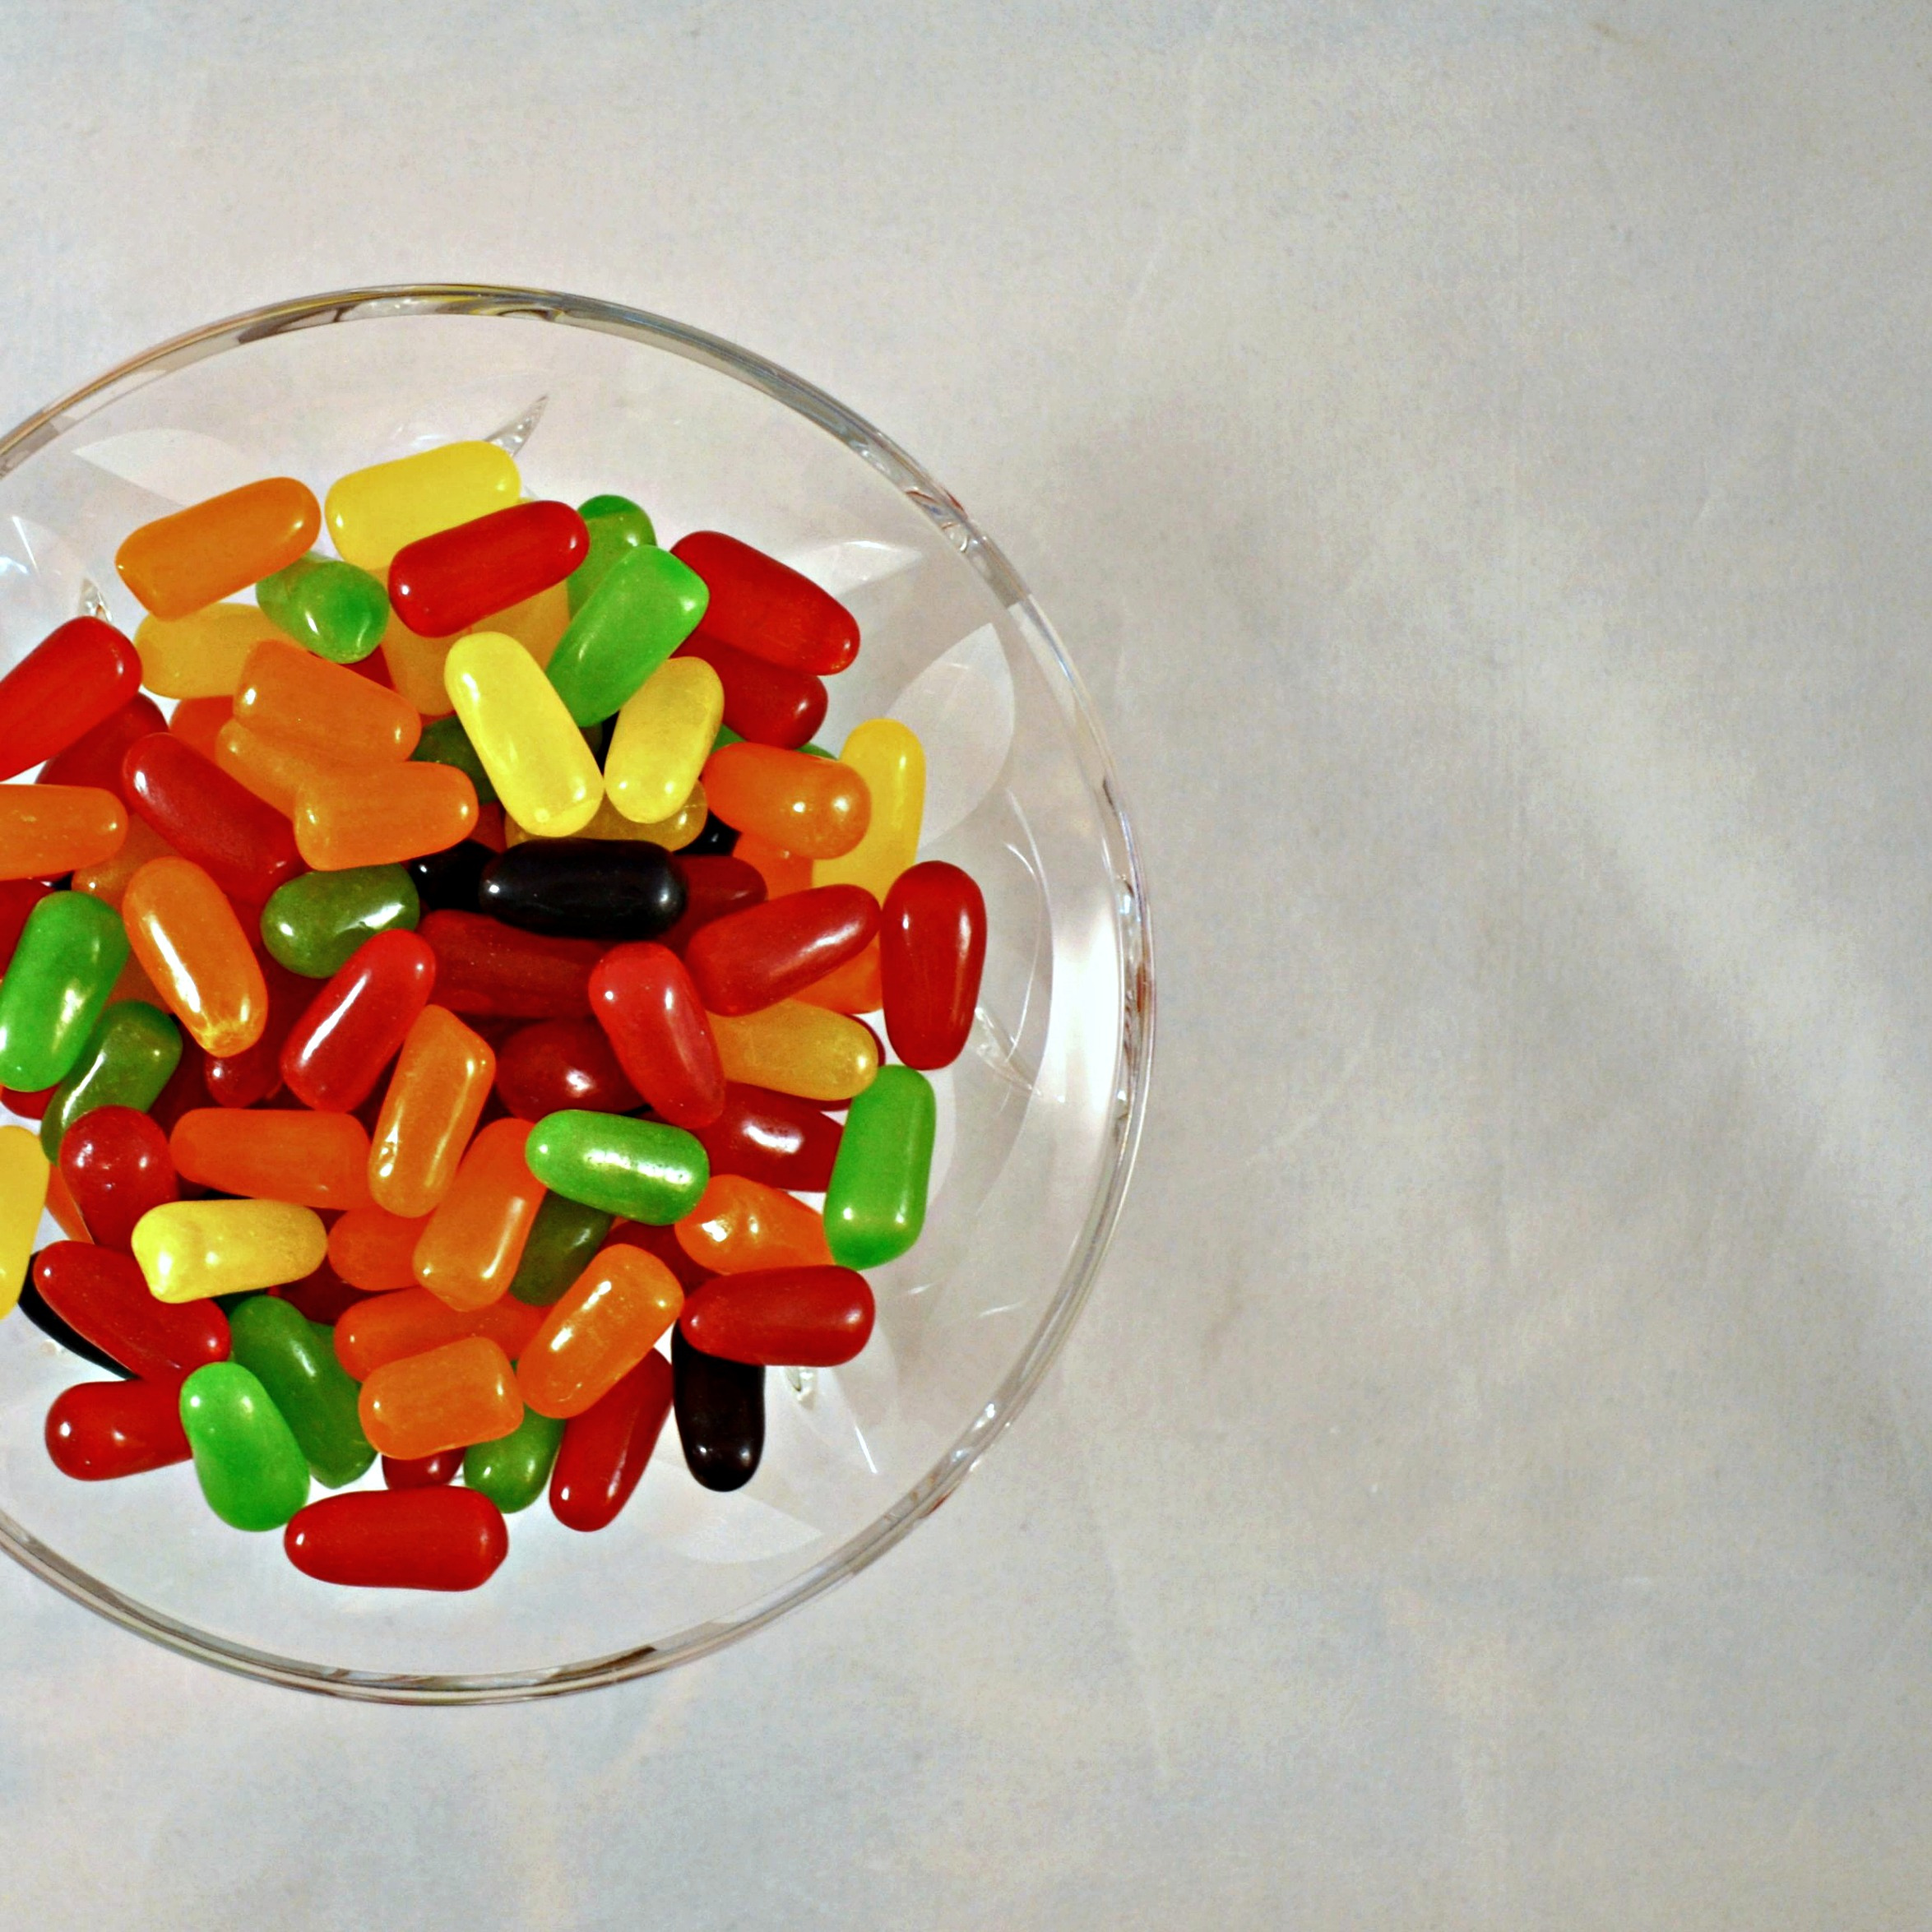 Mike and Ike for Halloween